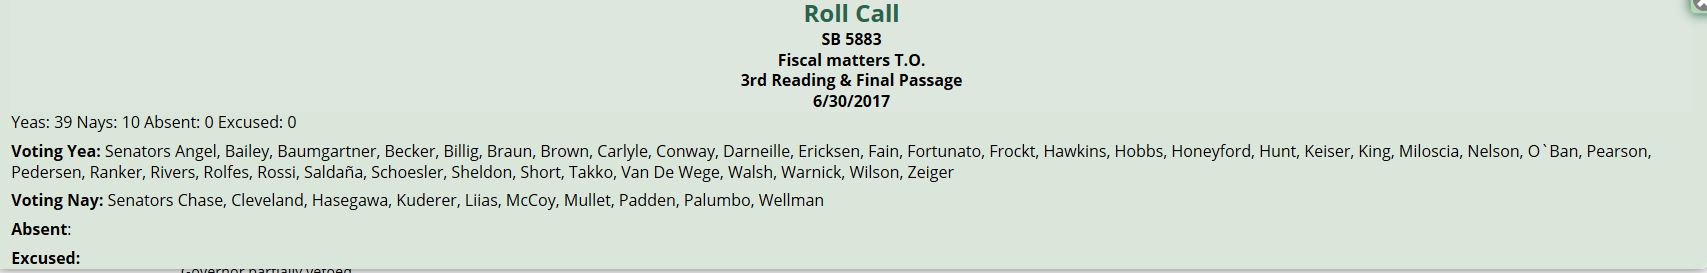 Roll call vote for SB5883